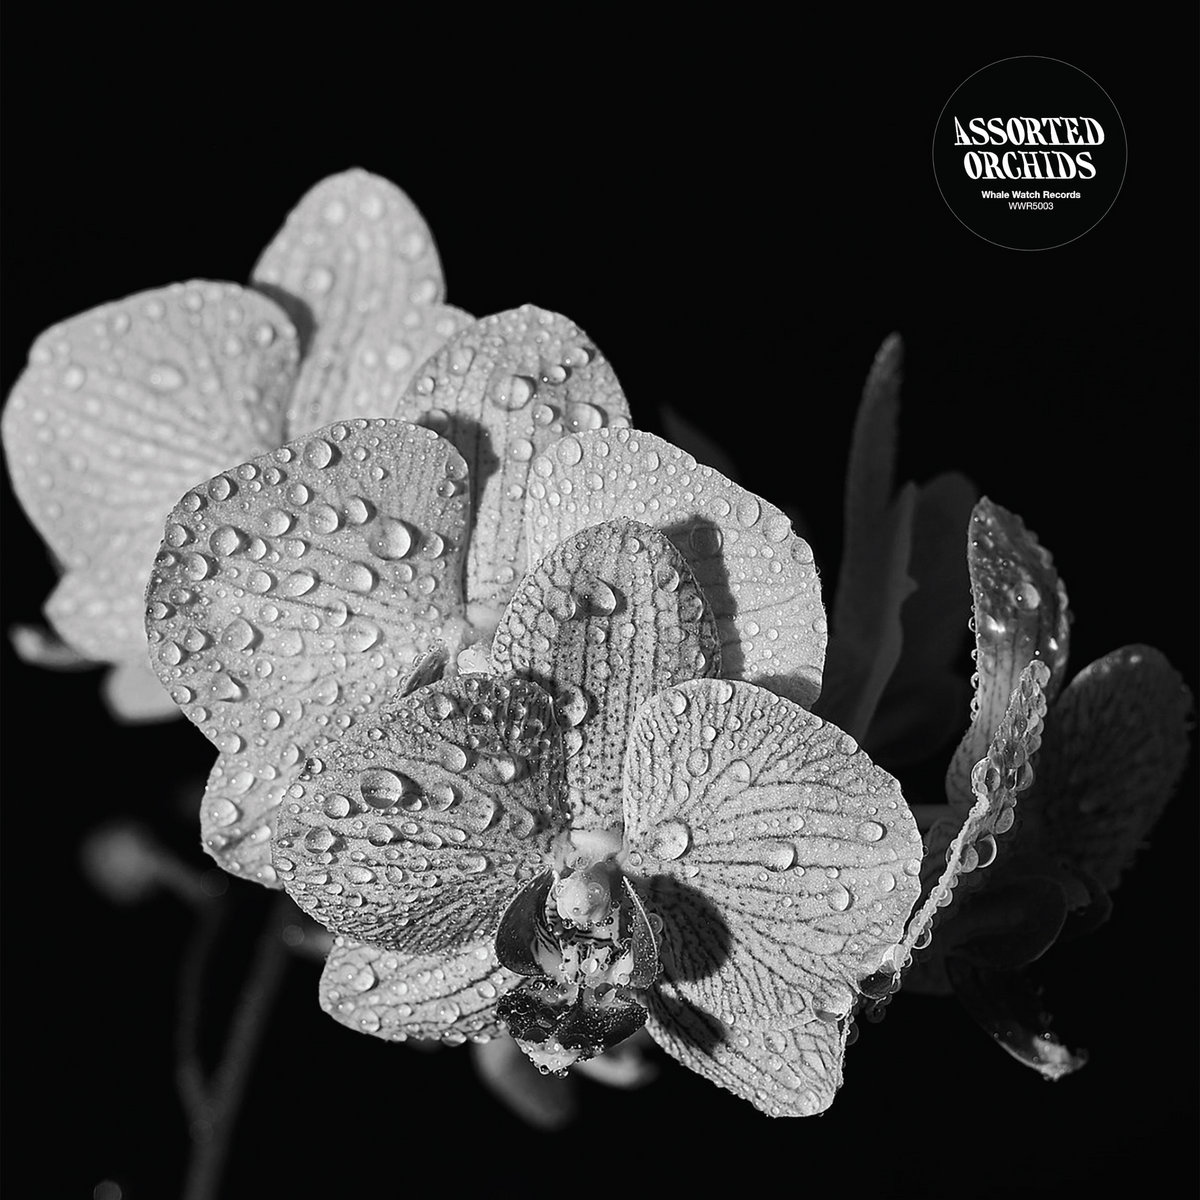 STEREO EMBERS EXCLUSIVE ALBUM STREAM – The Extraordinary Self-Titled, Guitar Soli Debut from Assorted Orchids